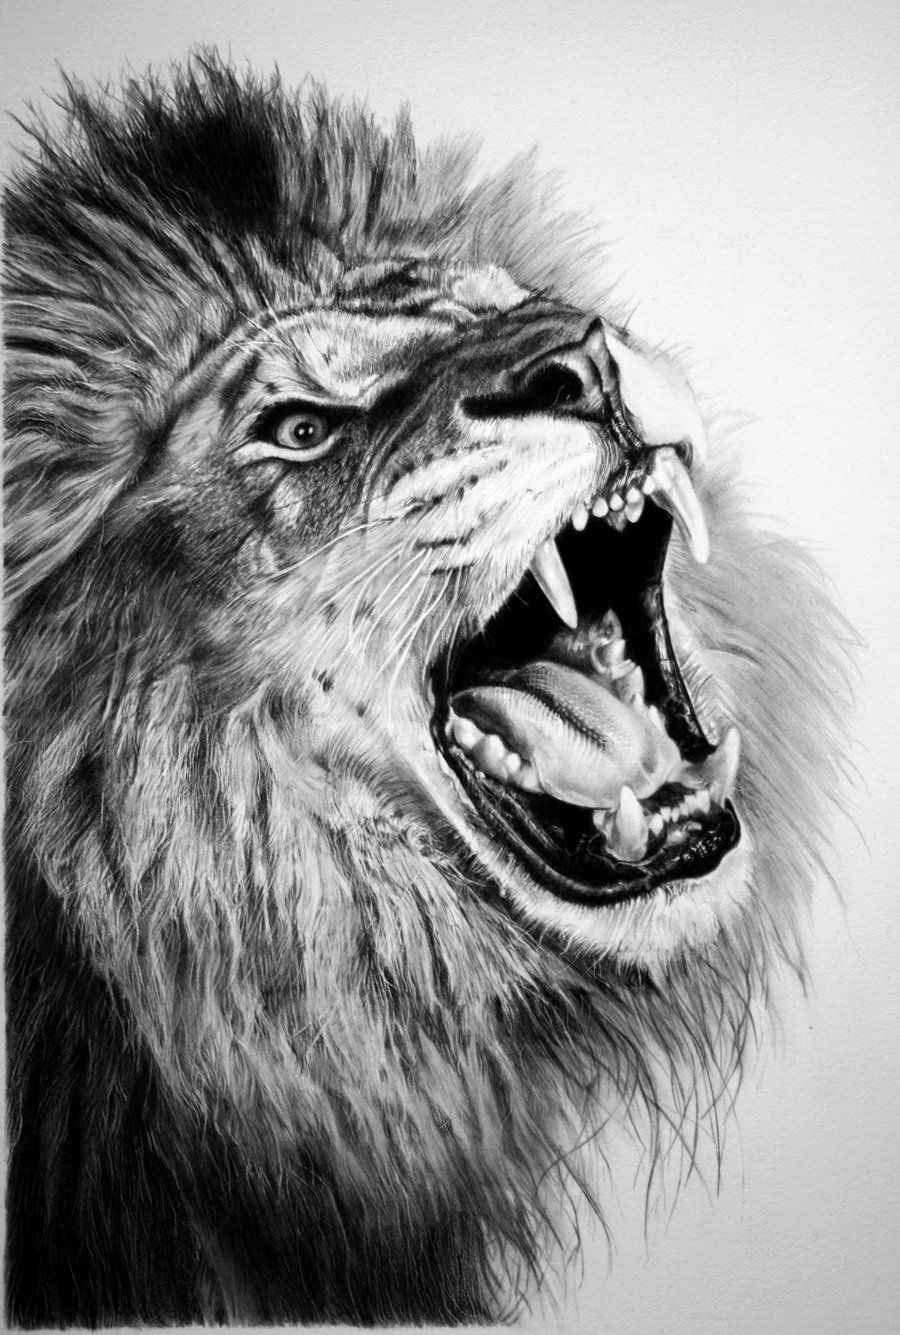 Lion Realistic Drawing : realistic, drawing, Pencil, Francoclun, DeviantArt, Animal, Sketches,, Drawings, Animals,, Realistic